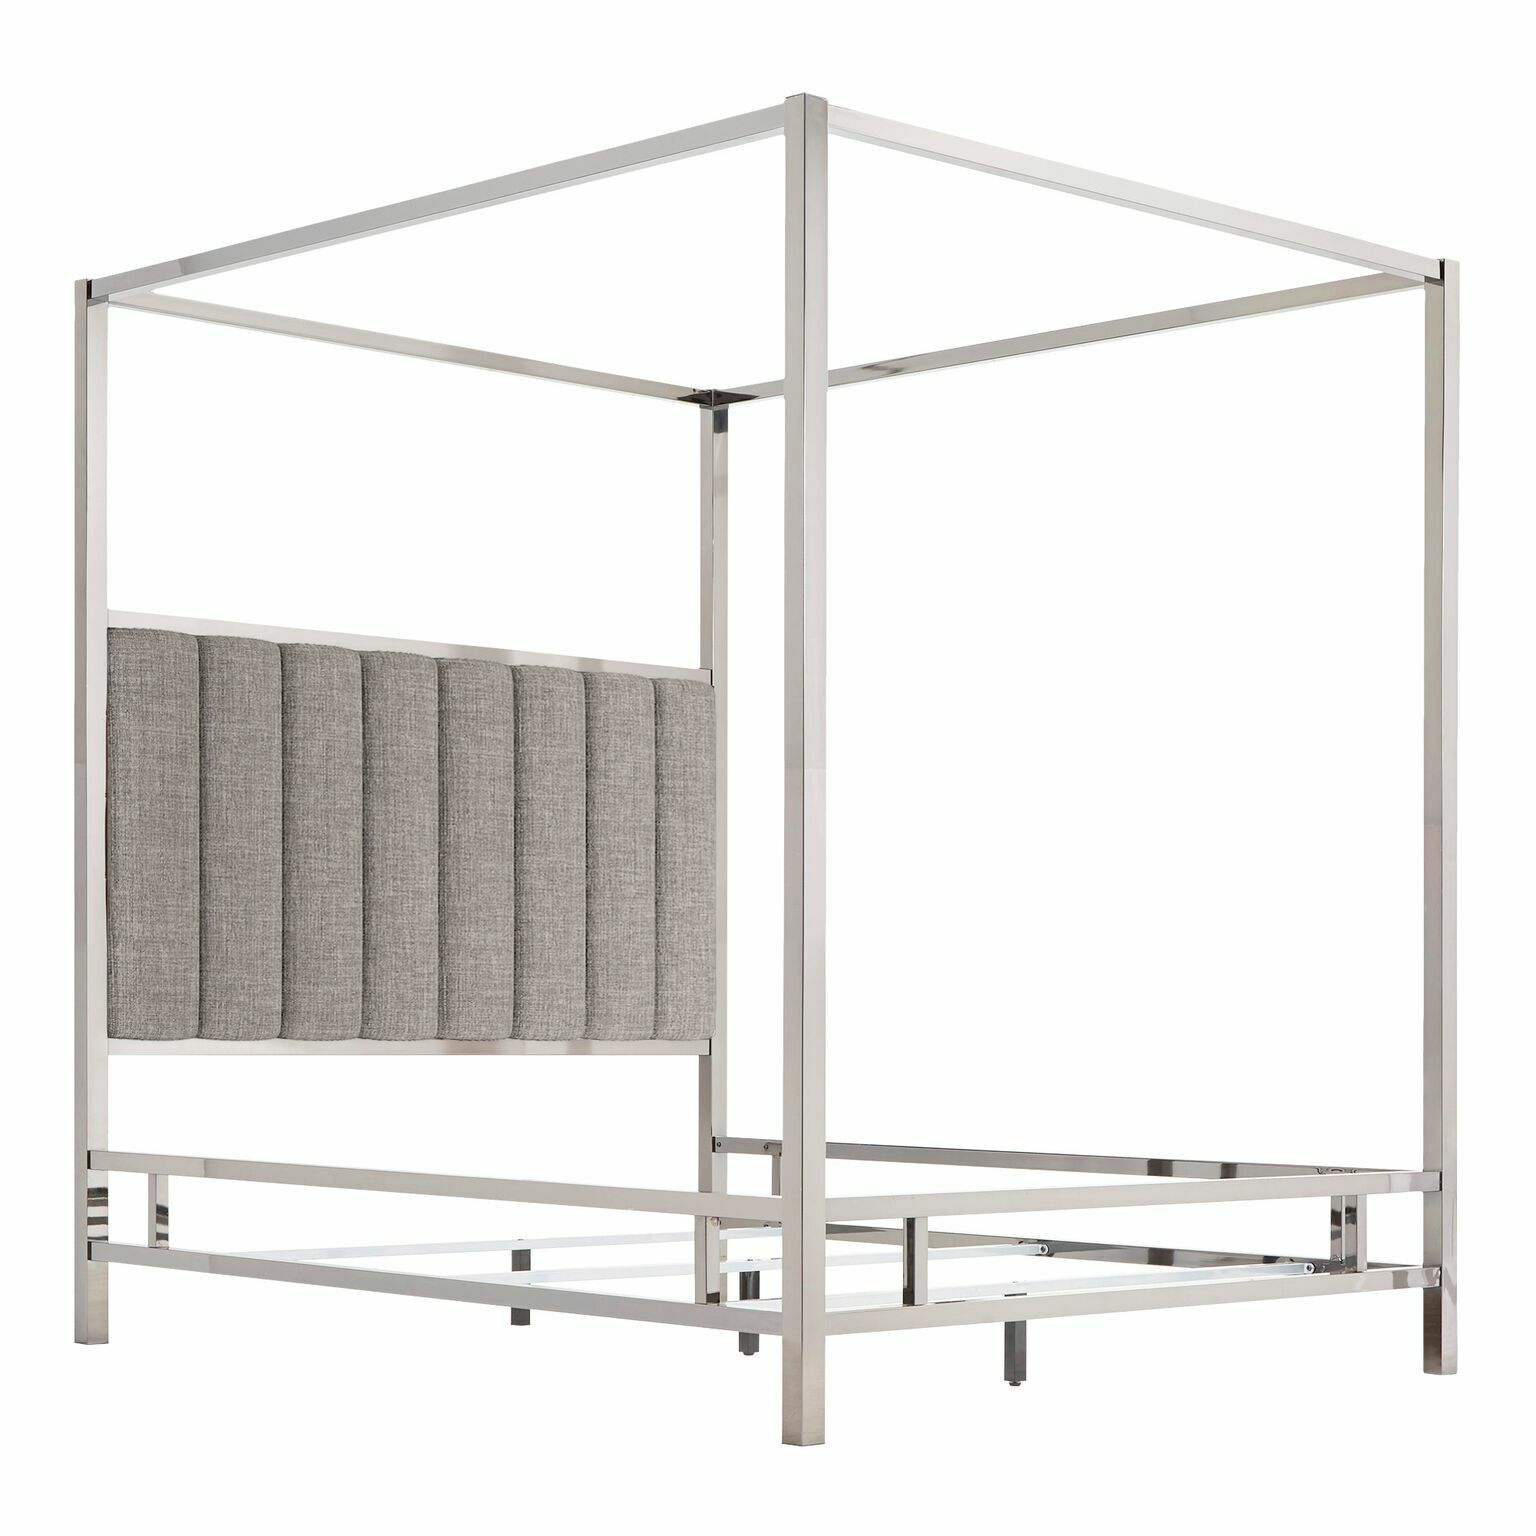 Wicklund Upholstered Canopy Bed Color (Frame/Headboard): Chrome Metal/Gray, Size: Full